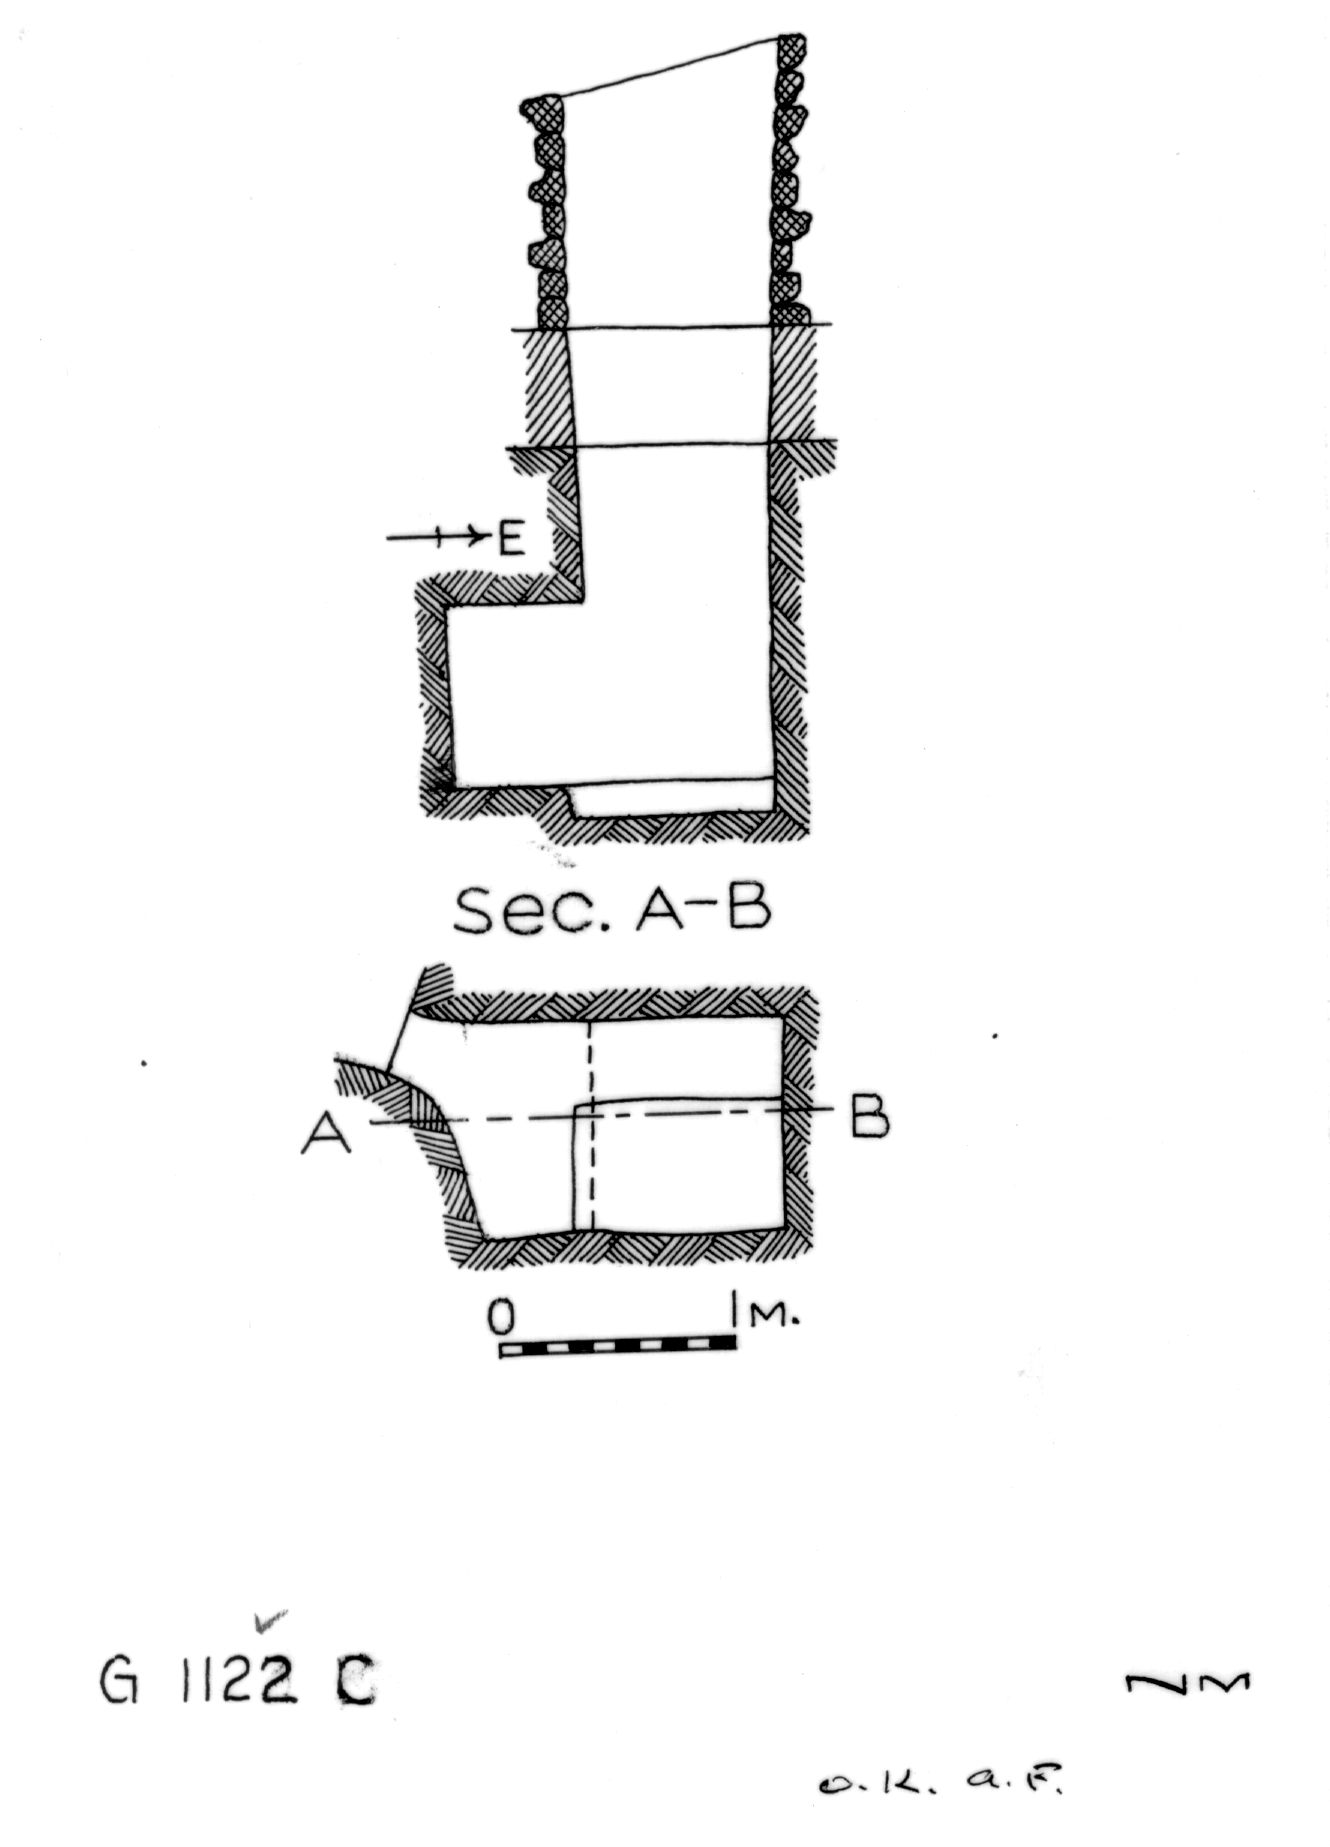 Maps and plans: G 1122, Shaft C